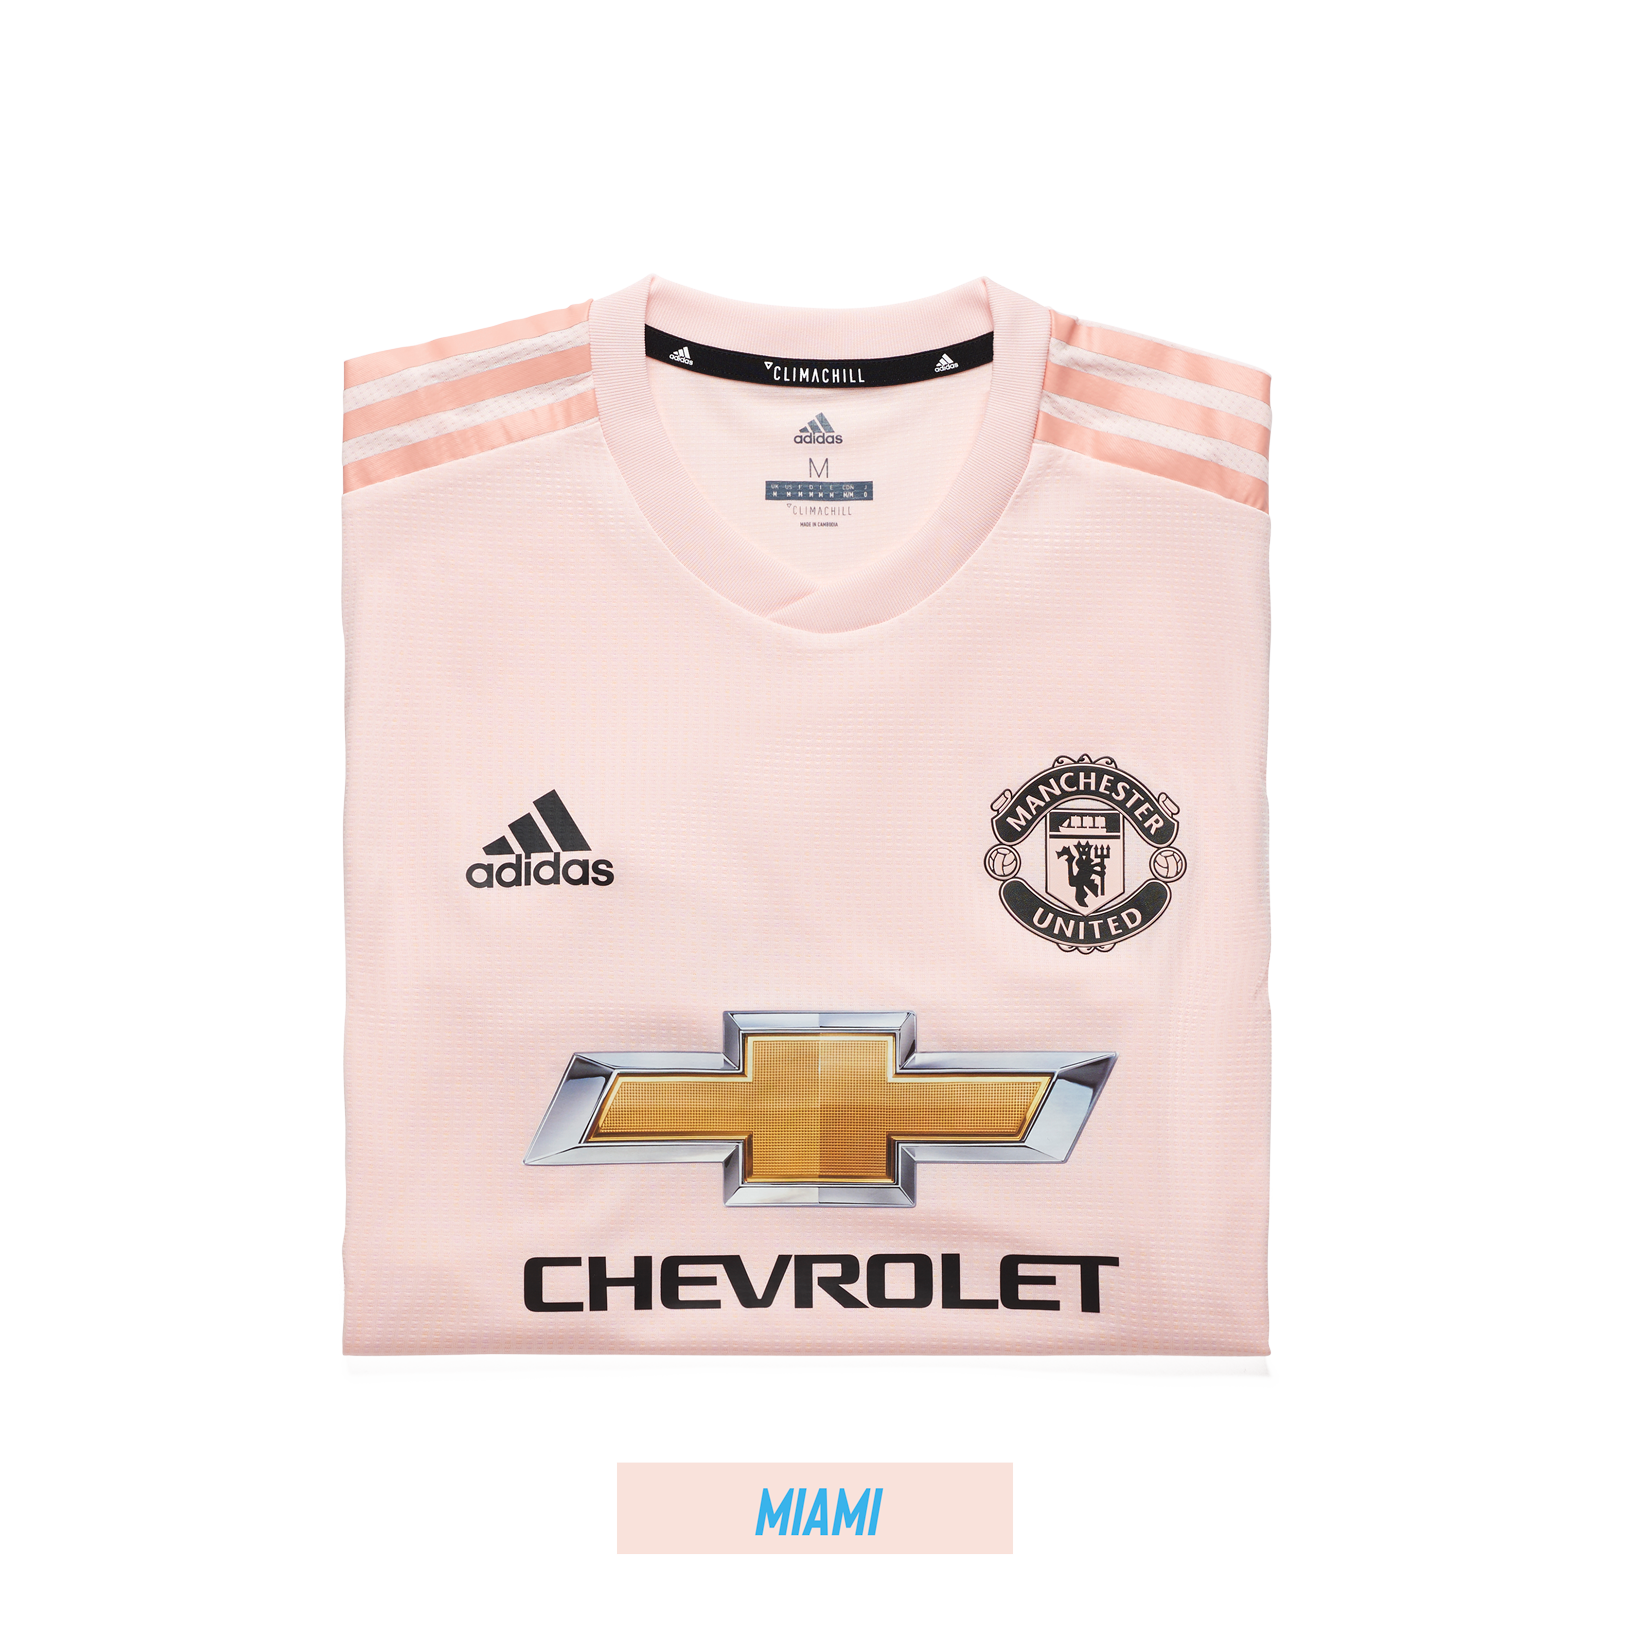 Glory-by-Nick-Pecori-Photographer-Manchester-United-Adidas-Kith-Parley-Miami-With-Miami-Label.png